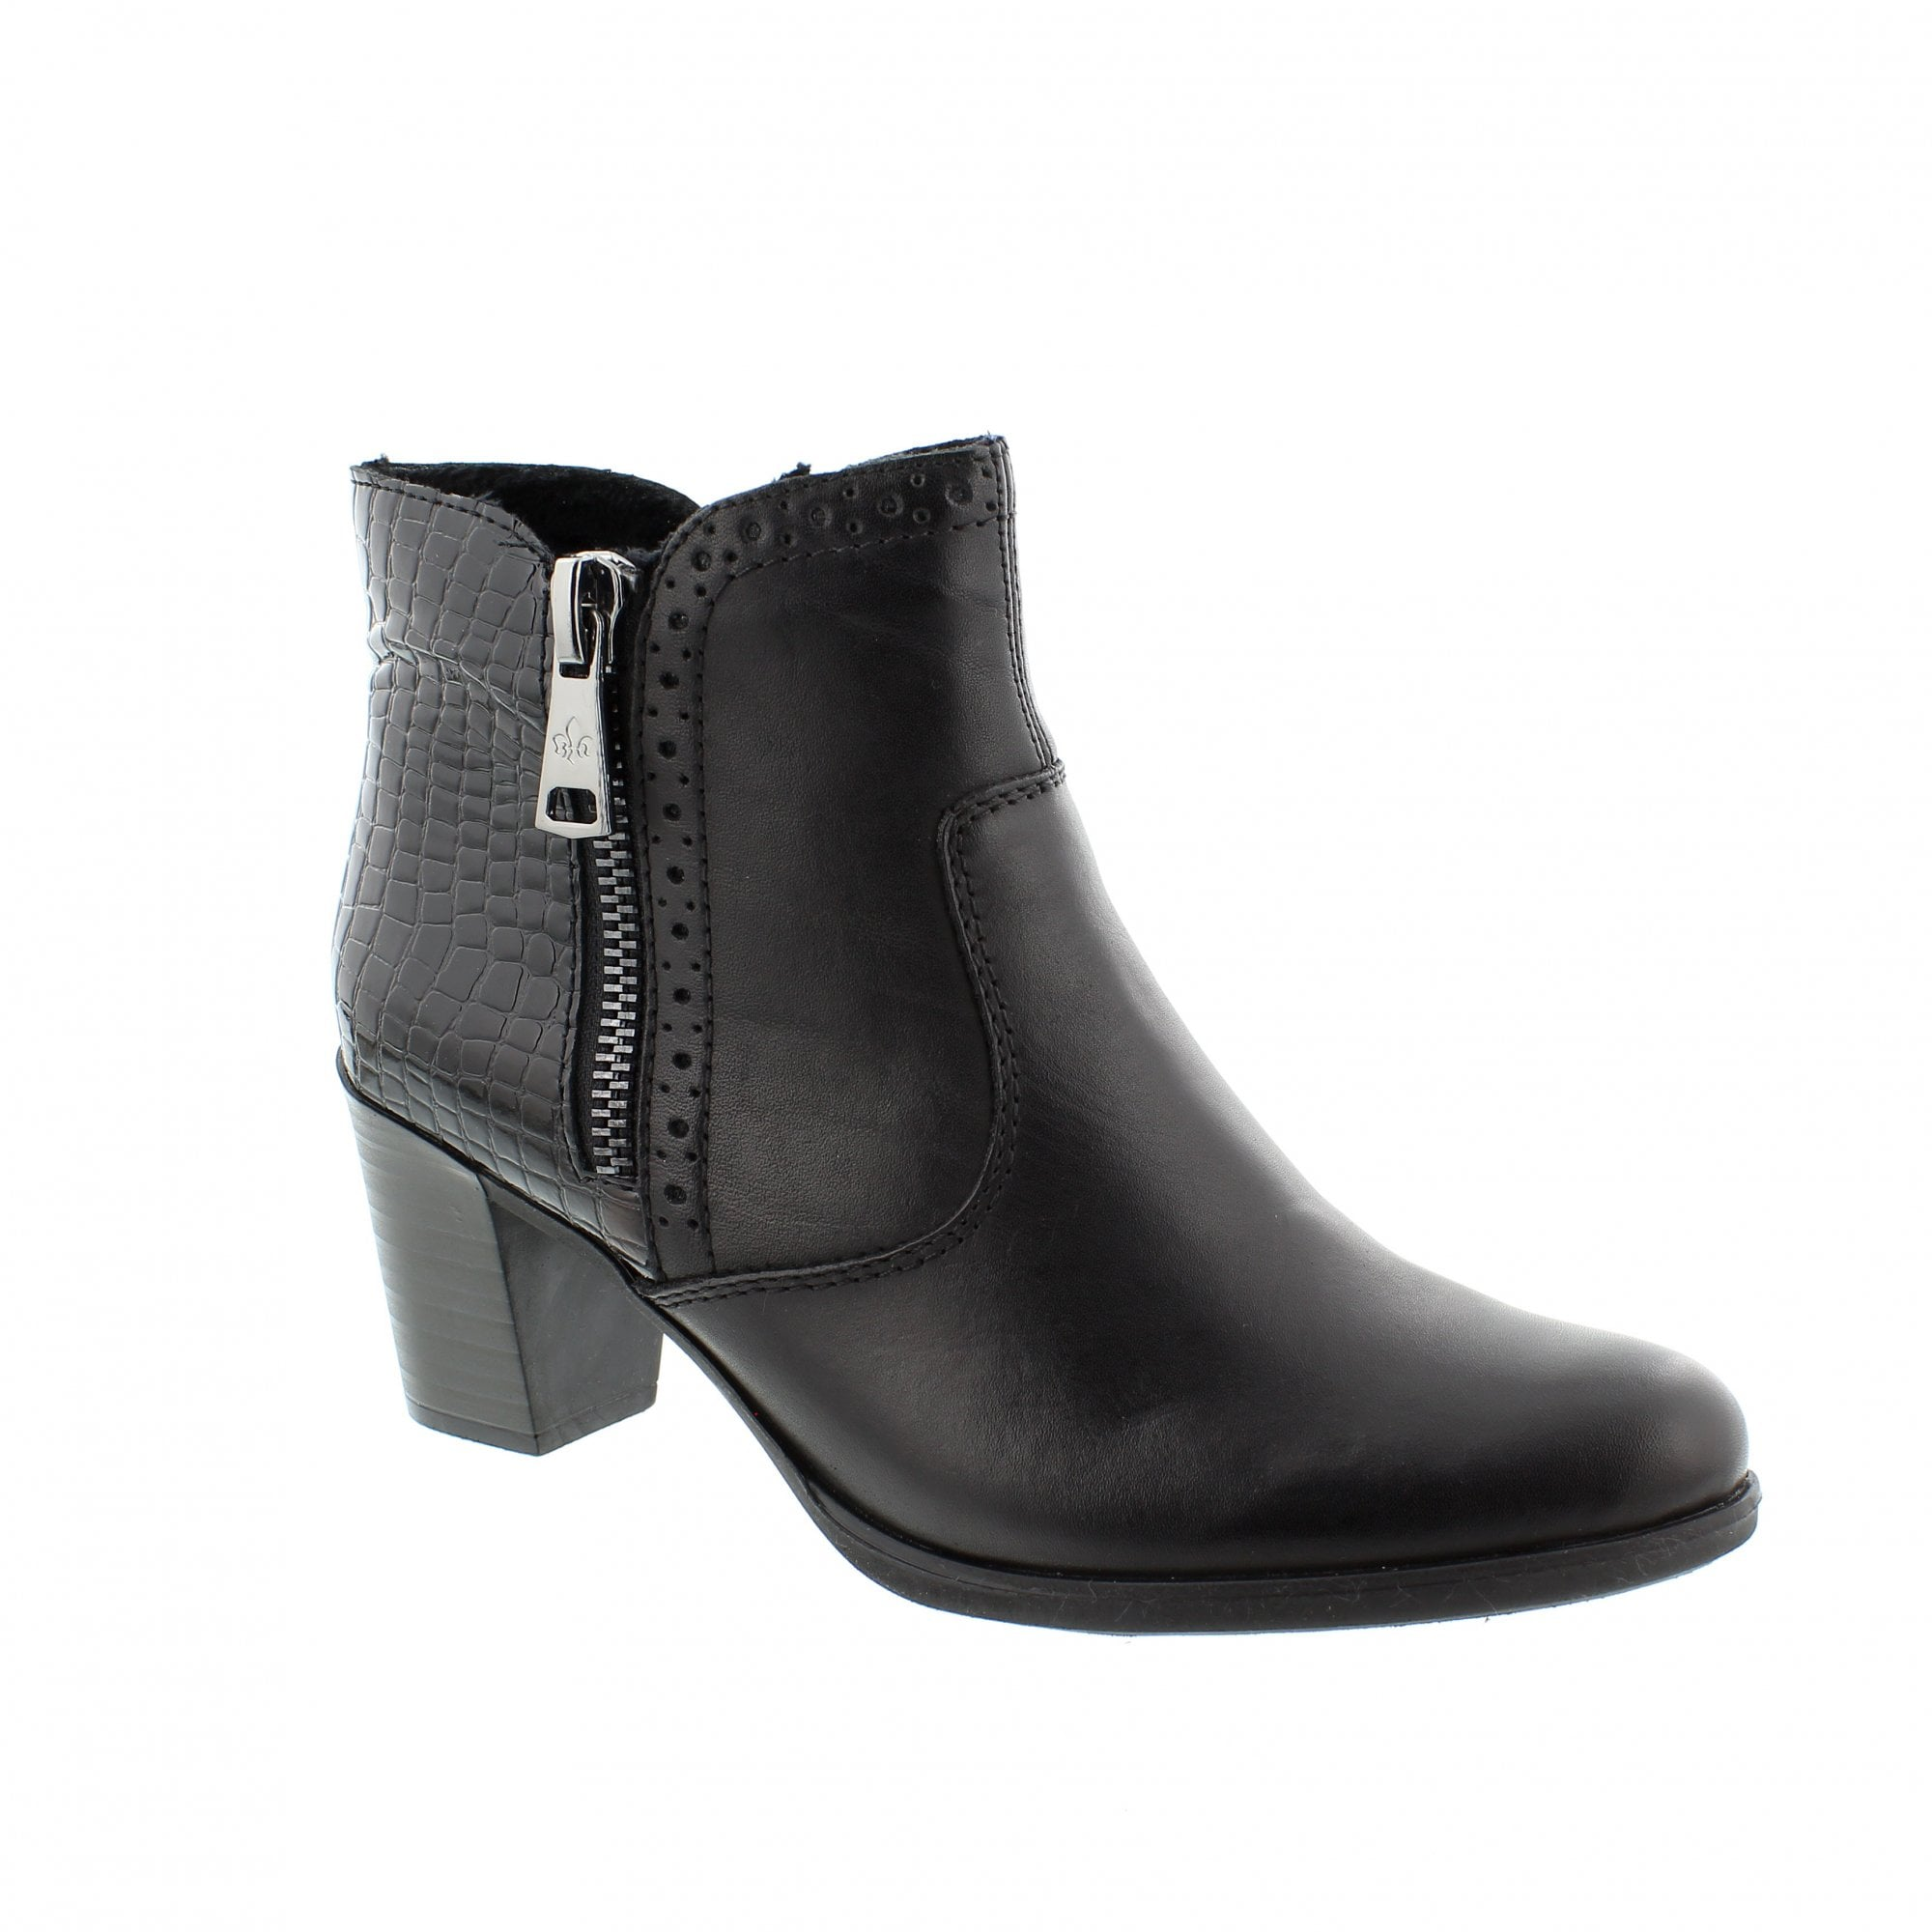 dac5a85c160 Rieker Y8965-00 Black Leather Womens Ankle Boots | Rogerson Shoes